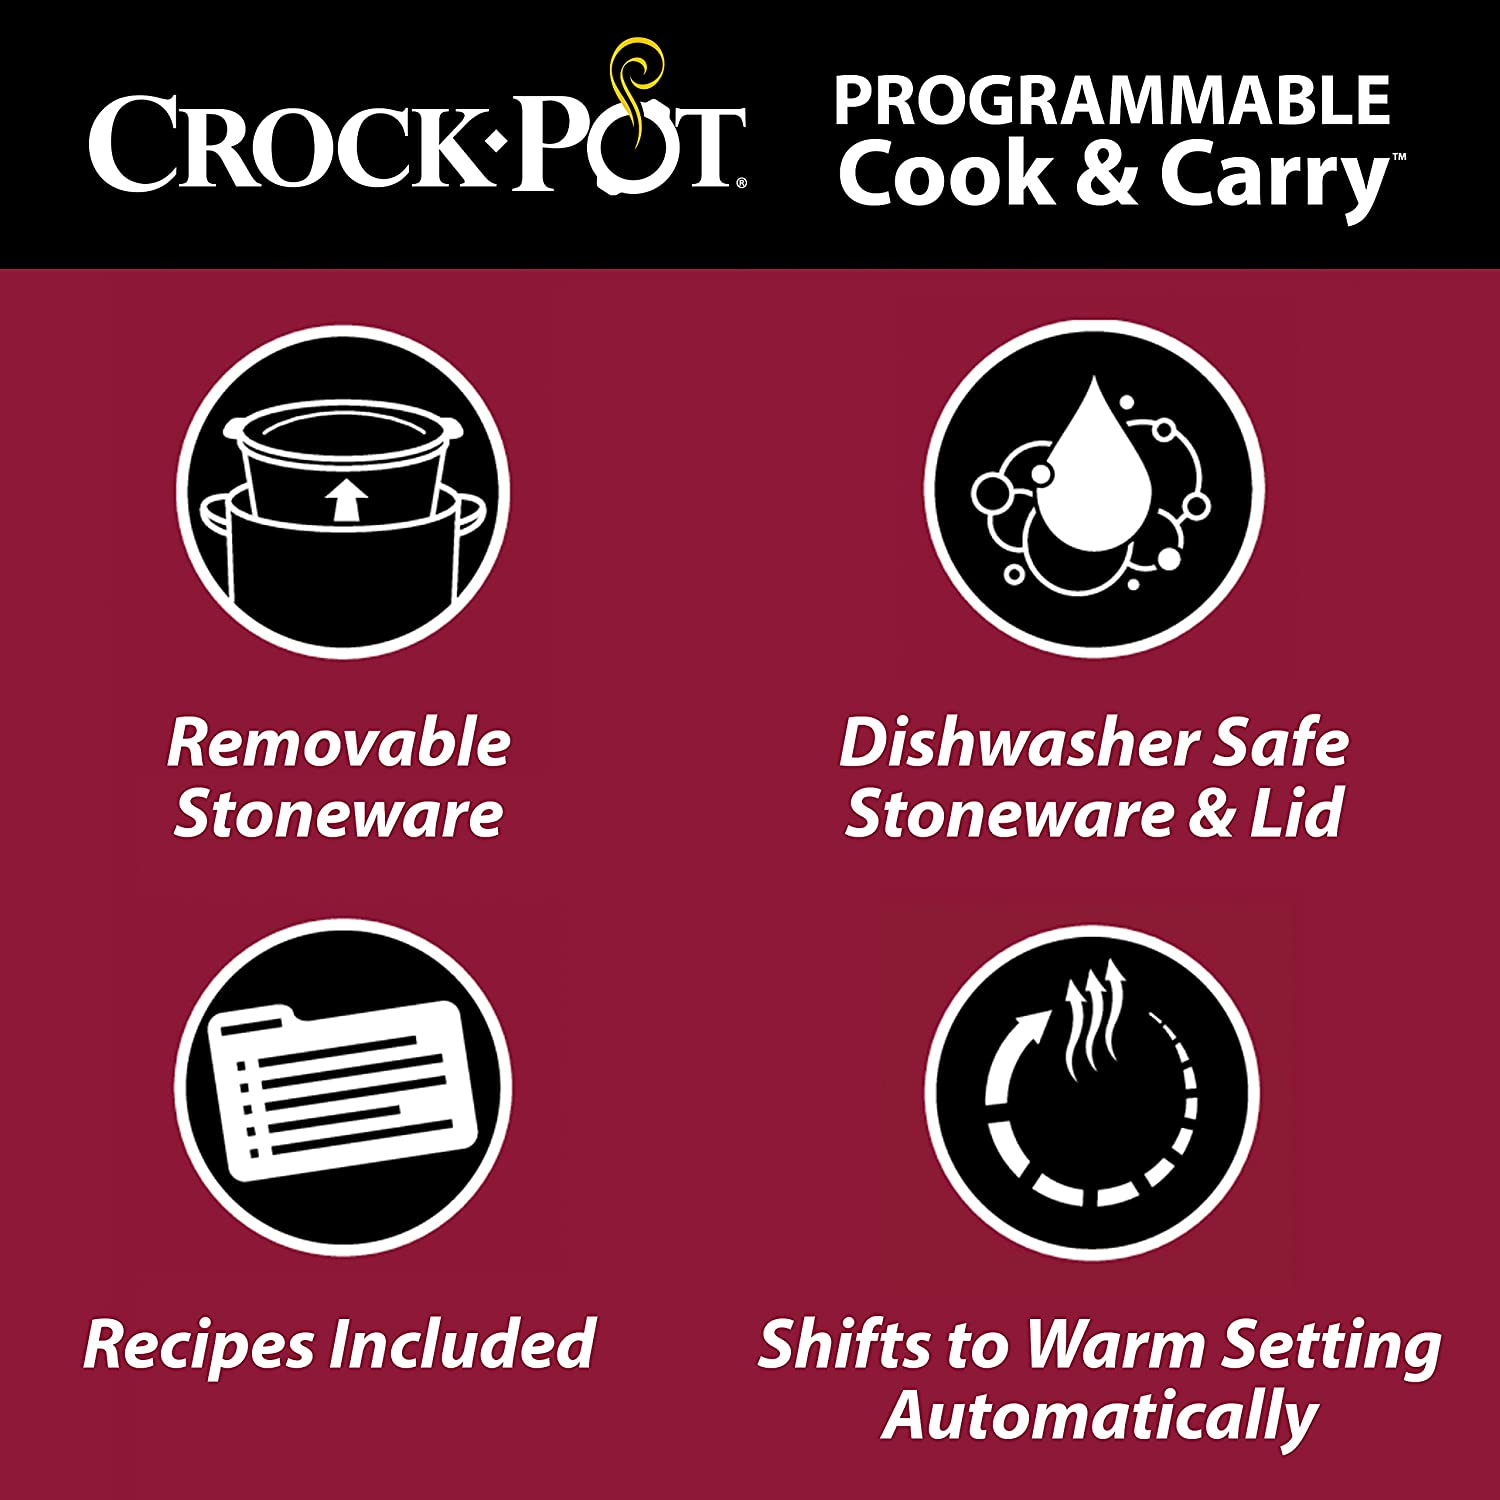 Crock-Pot SCCPVL610-S-A 6-Quart Cook & Carry Programmable Slow Cooker with Digital Timer, Stainless Steel: Kitchen & Dining